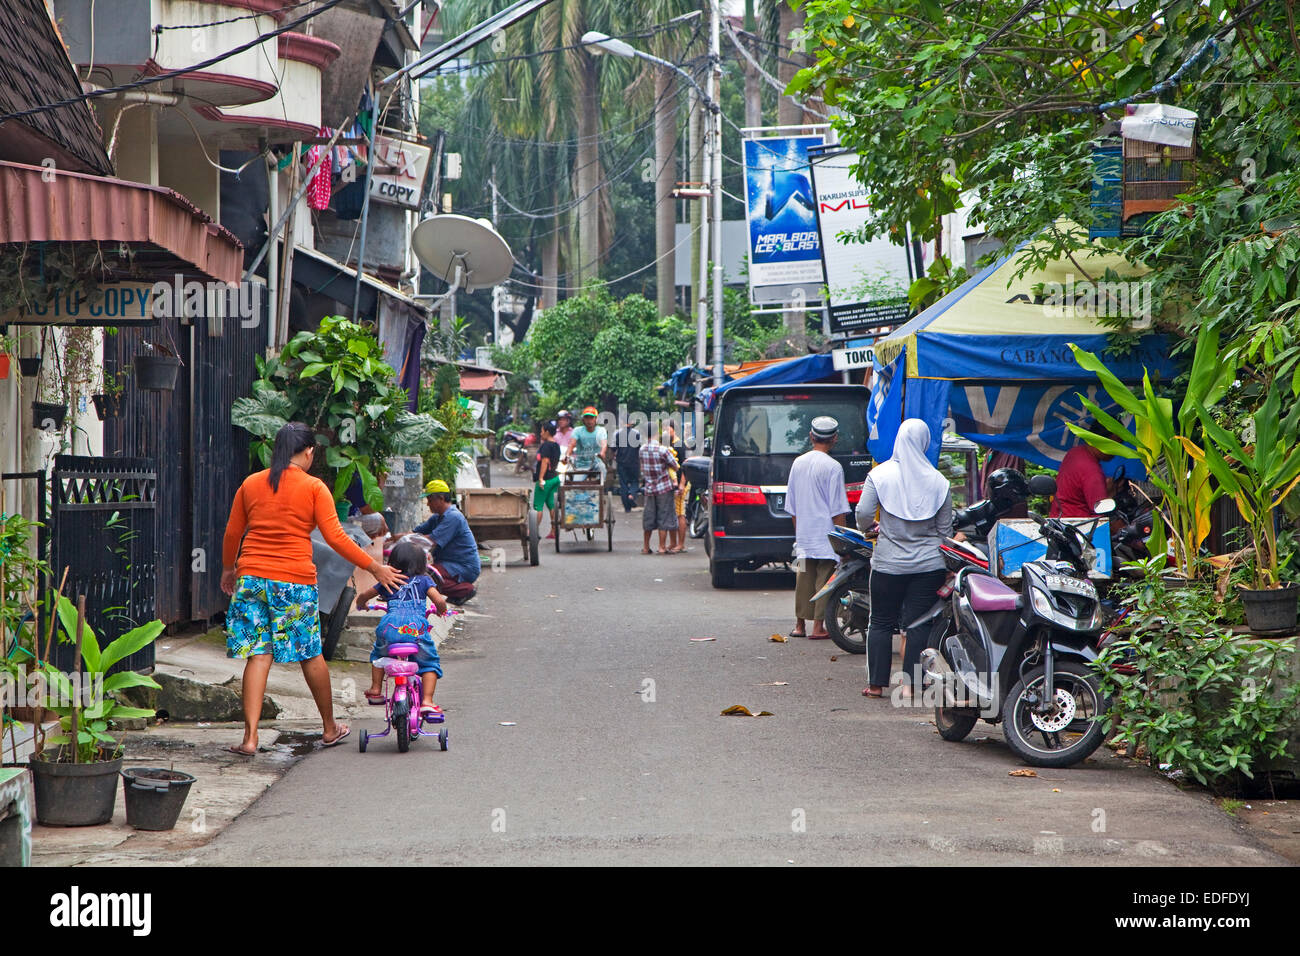 Daily life in street in the capital city Jakarta, Java, Indonesia - Stock Image